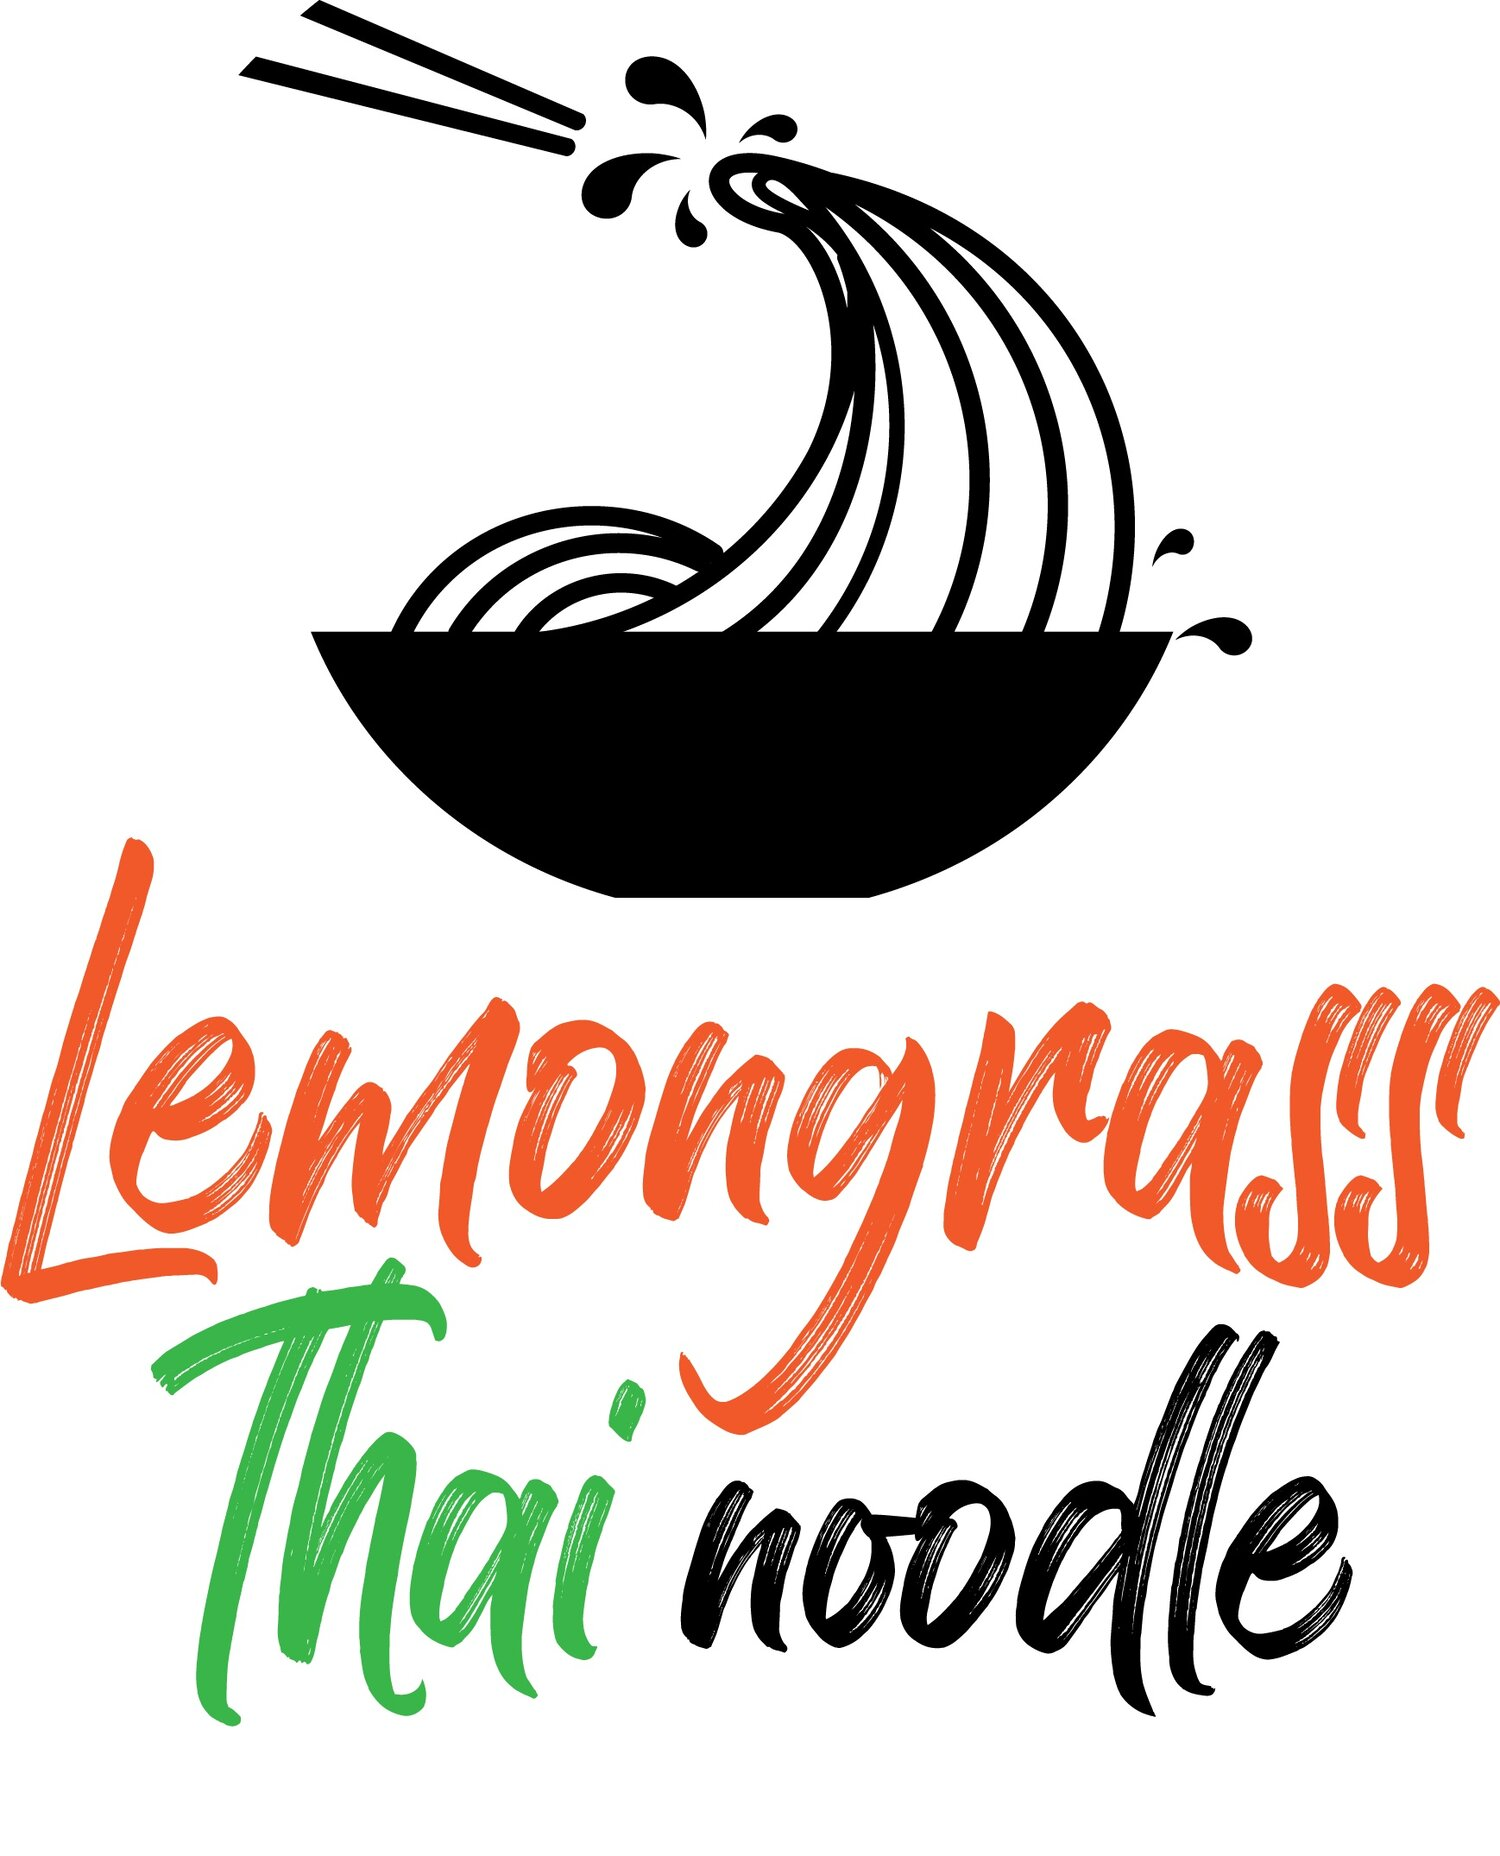 Lemongrass Thai Noodle